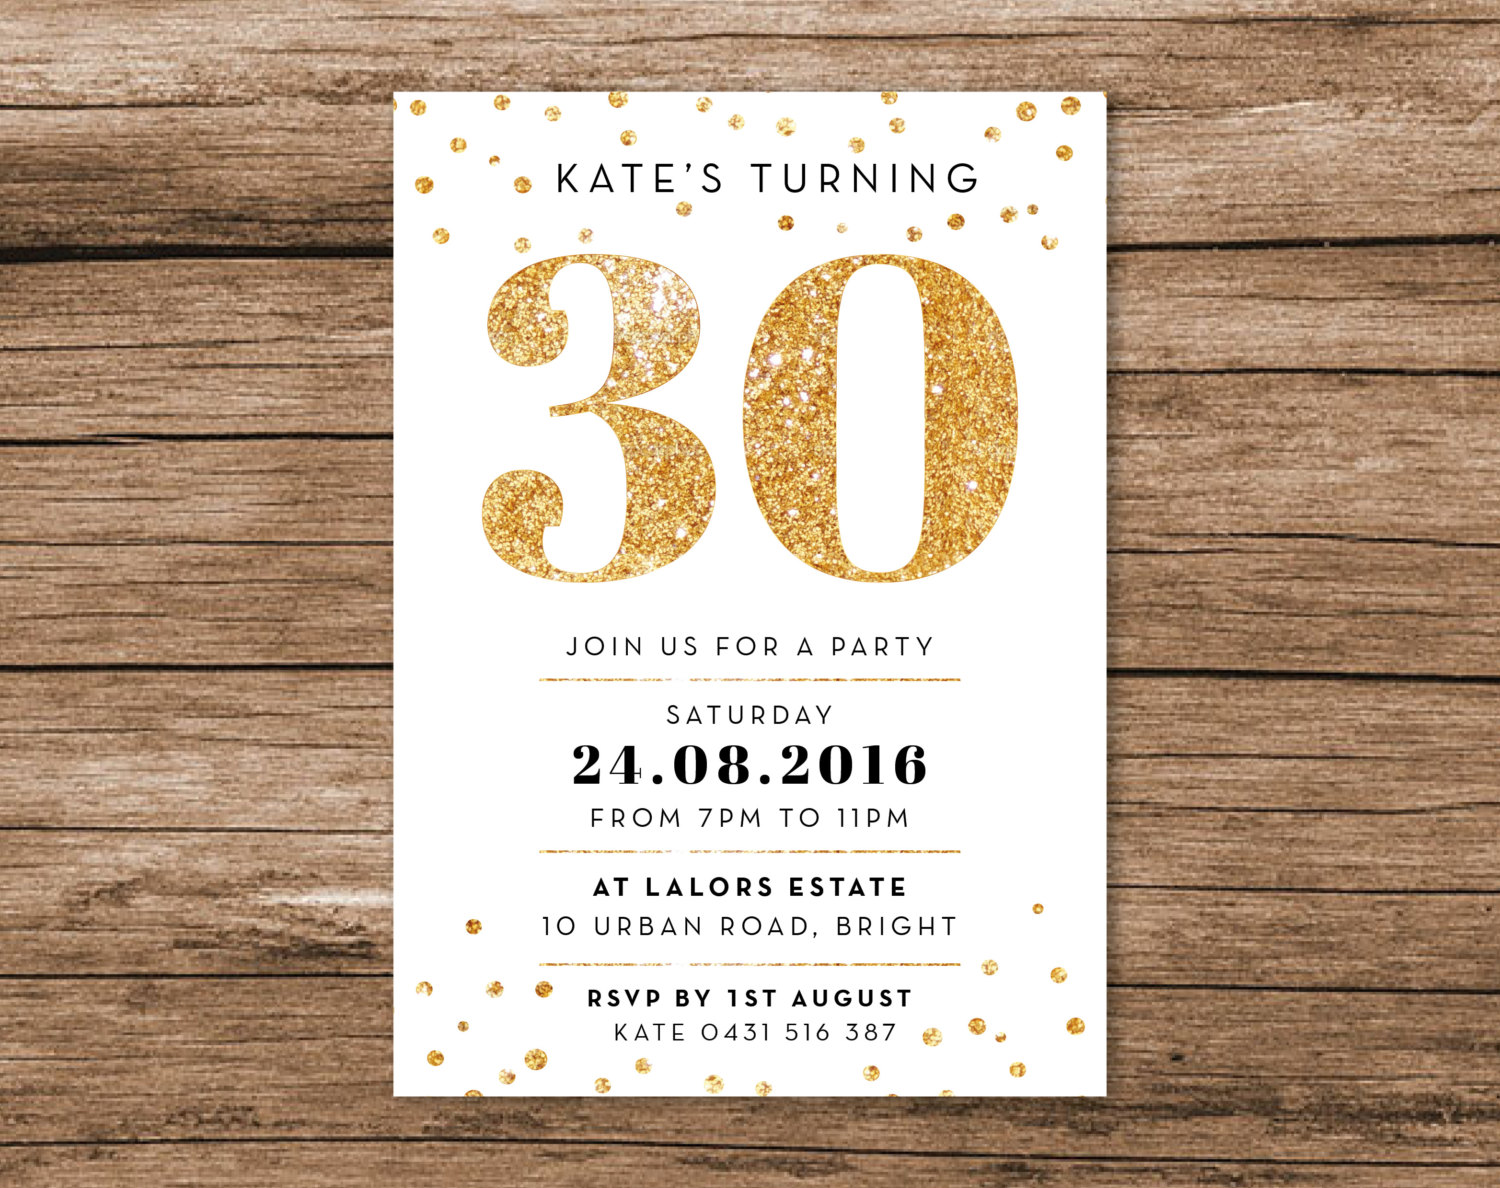 30th birthday invitations with photo ; 1e09eb6142d39a7ff1c7da6e02cc9bd2